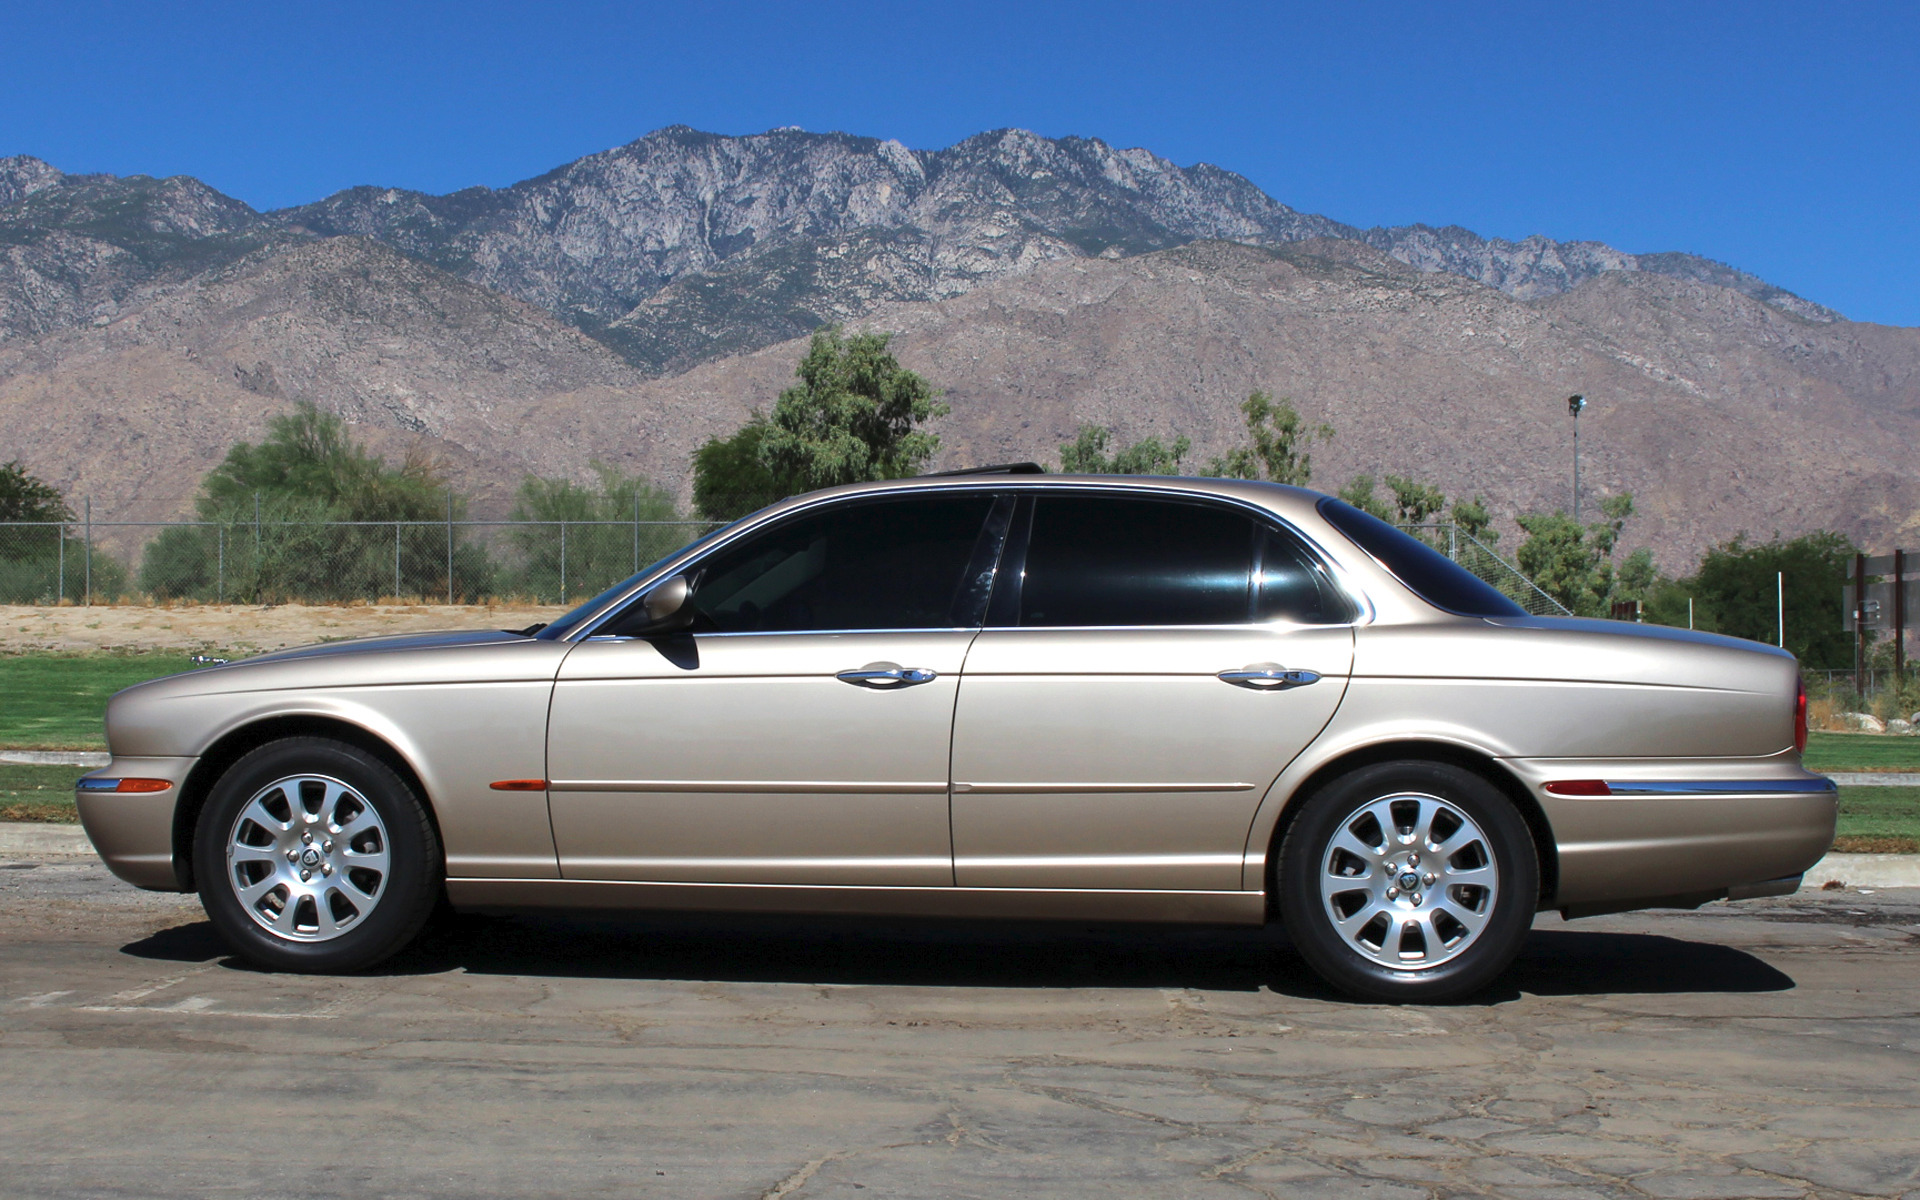 Used Jaguars For Sale >> 2004 Jaguar XJ8 XJ8 Stock # JO230 for sale near Palm Springs, CA | CA Jaguar Dealer